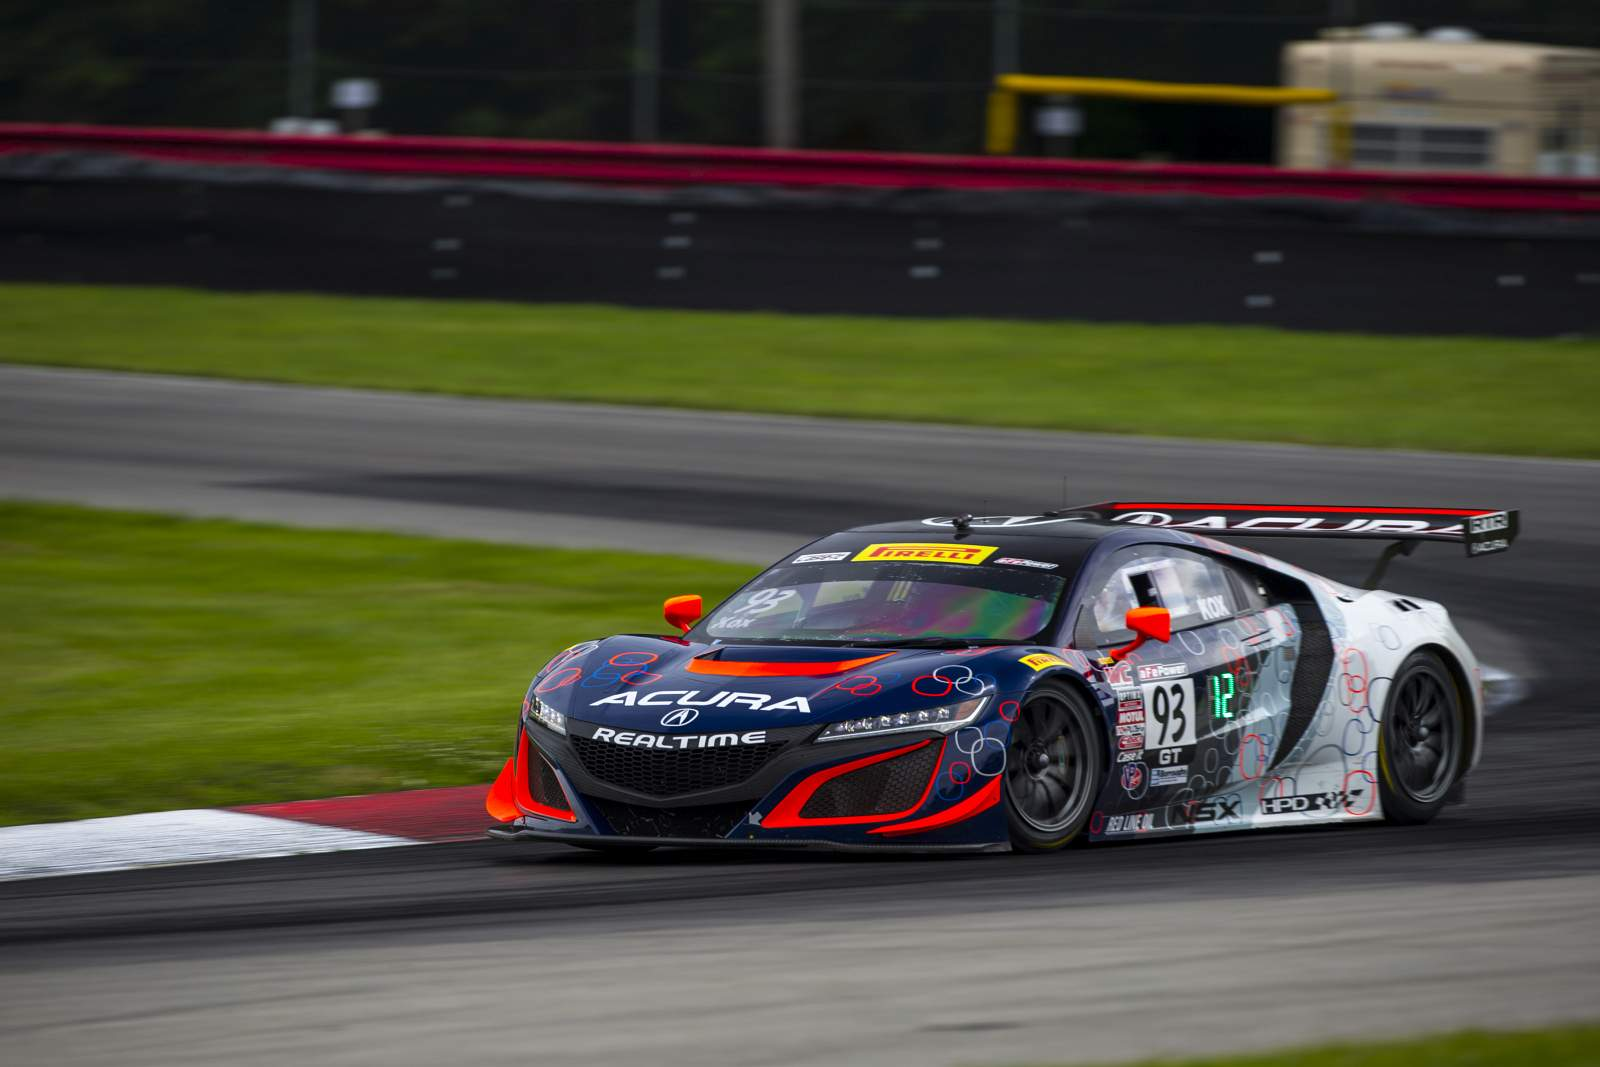 peter-kox-realtime-racing-pirelli-world-challenge-mid-ohio-22